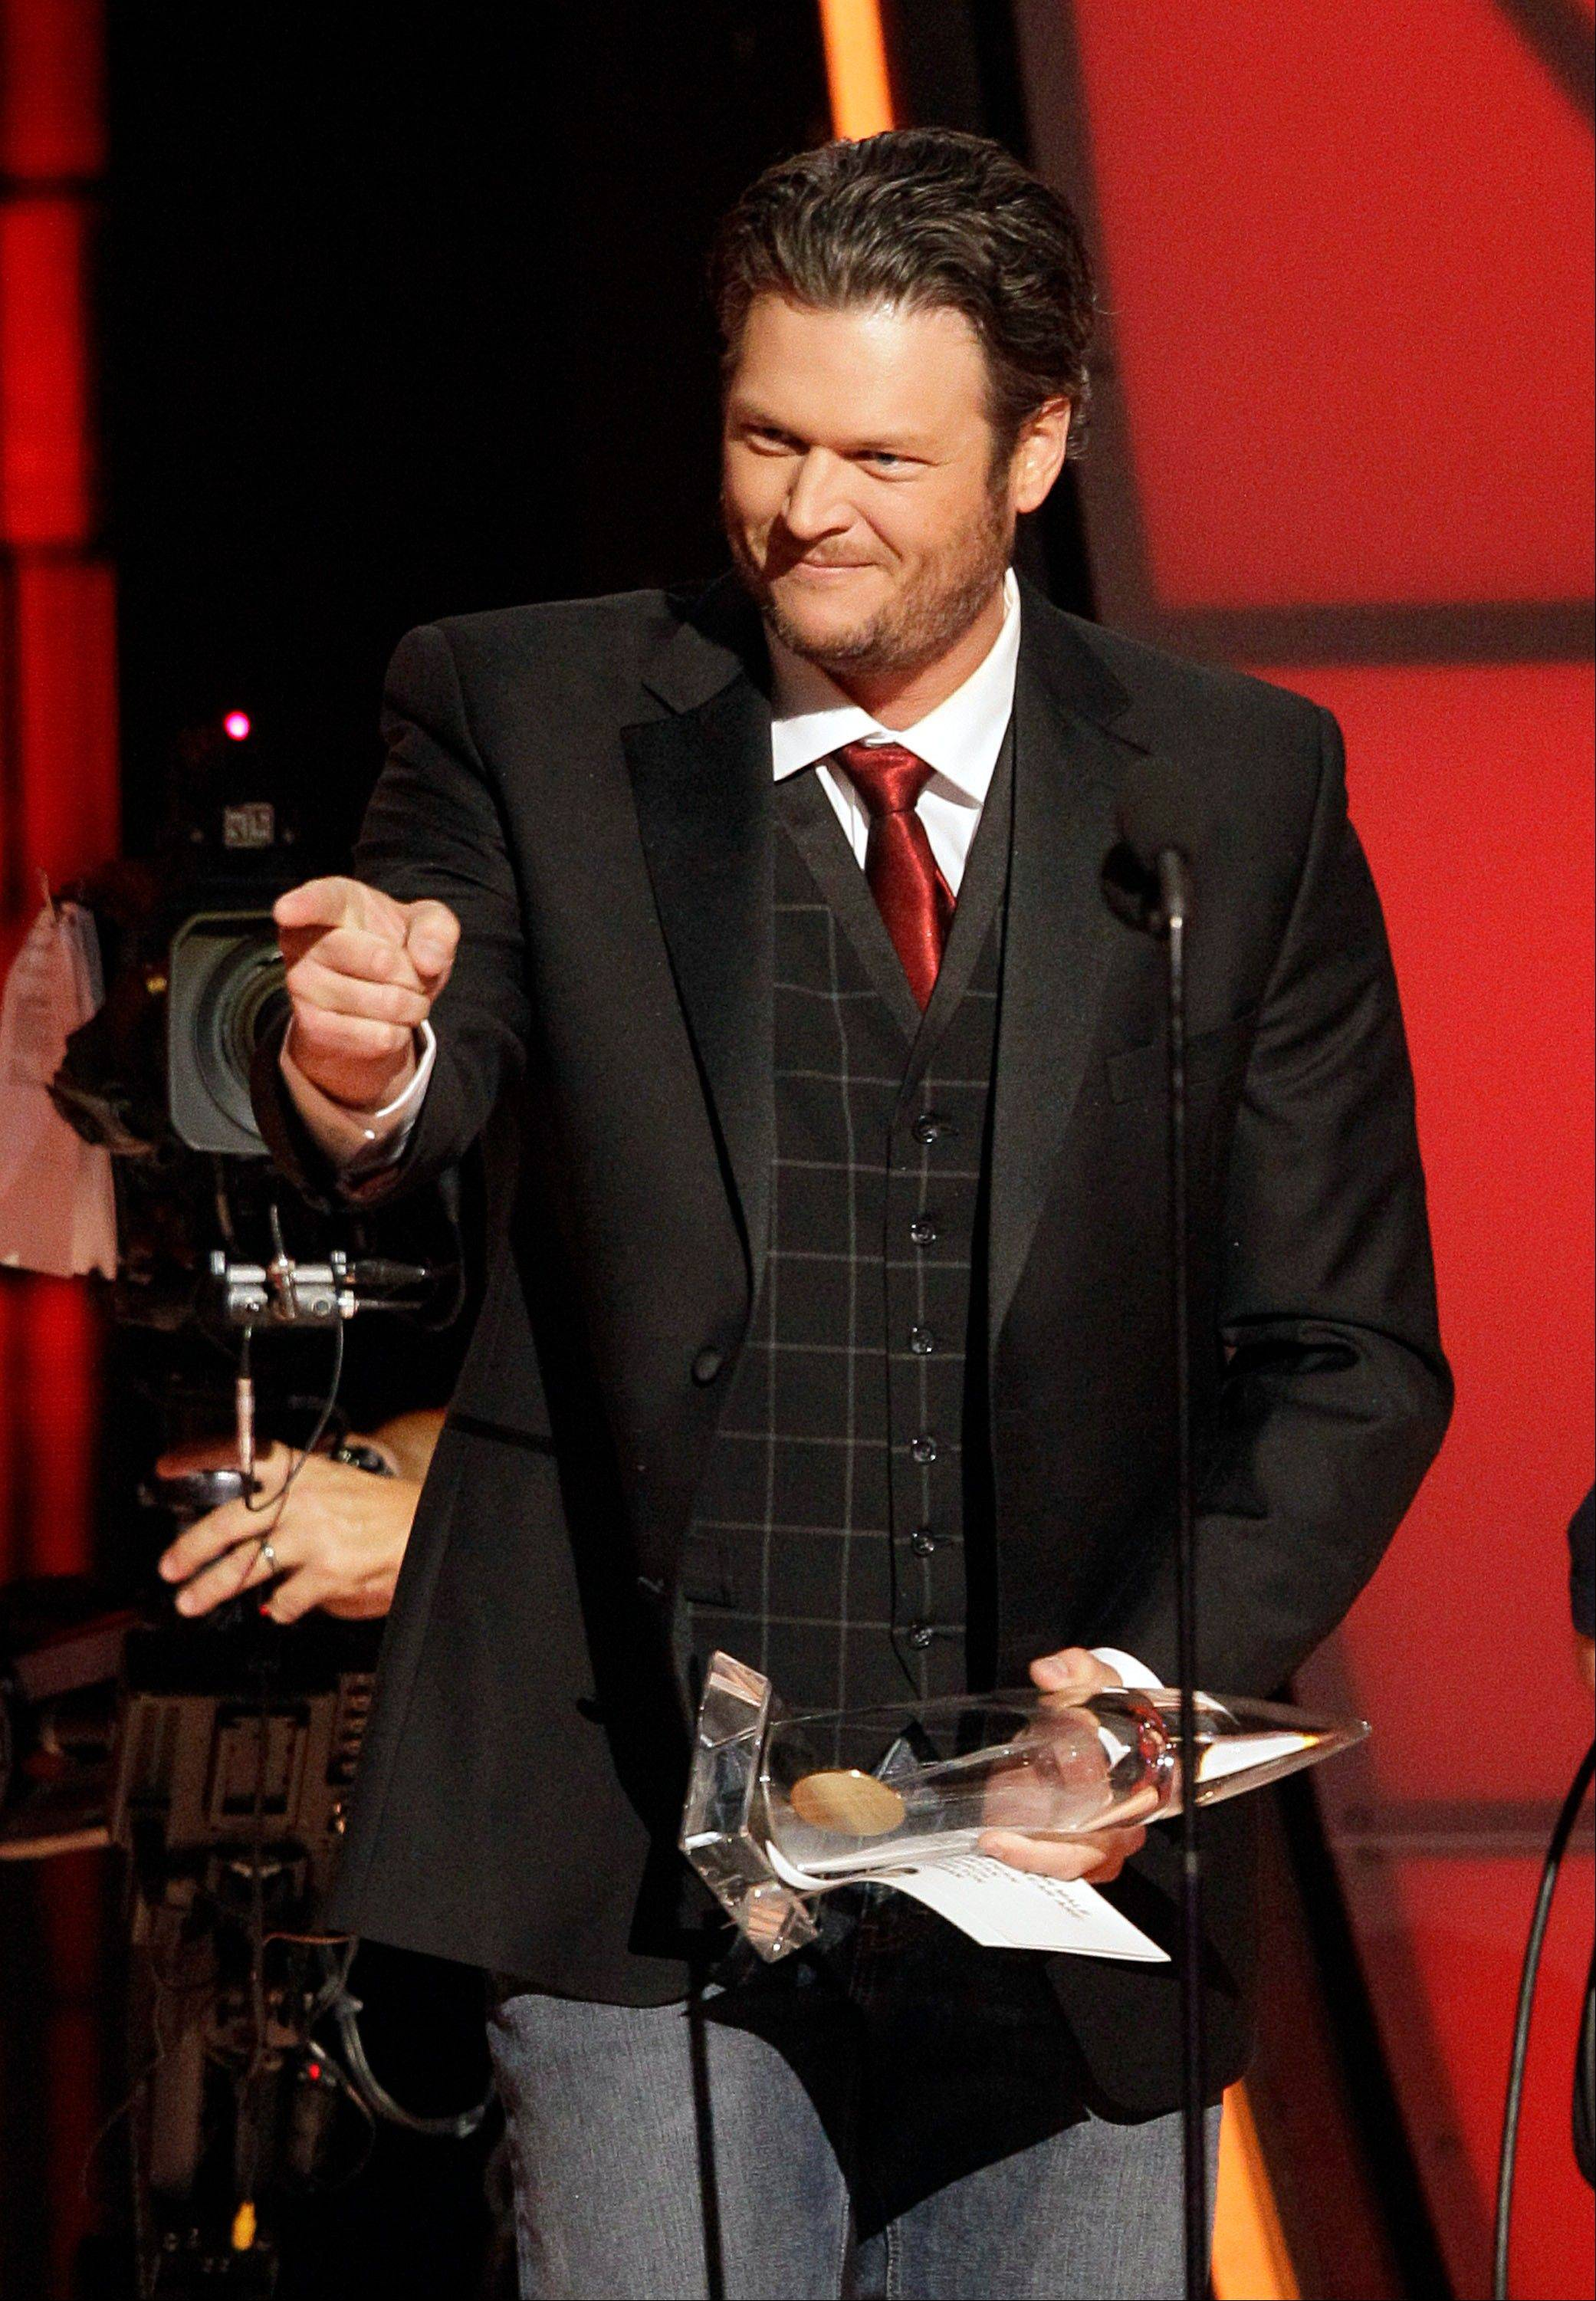 Blake Shelton accepts the award for male vocalist of the year at the 46th Annual Country Music Awards at the Bridgestone Arena on Thursday, Nov. 1, 2012, in Nashville, Tenn.